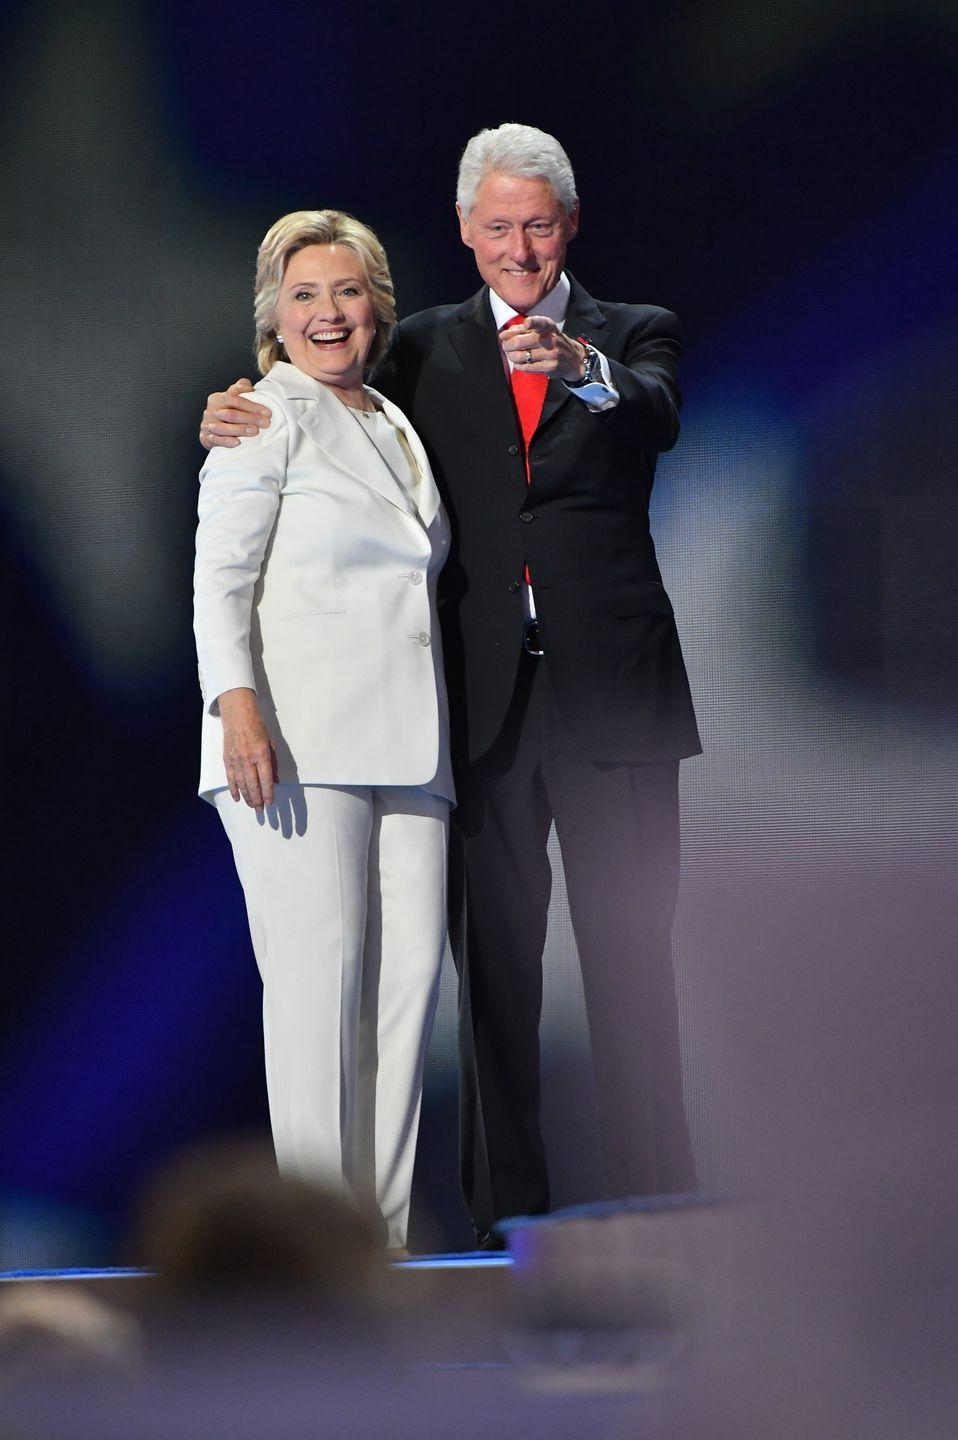 """<p>The former secretary of state and presidential candidate stayed with her husband despite his scandalous affair with an intern during his presidency, reports <em><a href=""""http://time.com/5120561/bill-clinton-monica-lewinsky-timeline/"""" rel=""""nofollow noopener"""" target=""""_blank"""" data-ylk=""""slk:TIME"""" class=""""link rapid-noclick-resp"""">TIME</a></em>.</p><p>Many called for Bill Clinton's resignation, but in an interview with <em><a href=""""https://www.cbsnews.com/news/hillary-clinton-cbs-sunday-morning-bill-should-absolutely-not-have-resigned-over-lewinsky-scandal/"""" rel=""""nofollow noopener"""" target=""""_blank"""" data-ylk=""""slk:CBS"""" class=""""link rapid-noclick-resp"""">CBS</a></em> Hillary said, """"Absolutely not,"""" when asked if her husband should have resigned. She still stands by him today.</p>"""